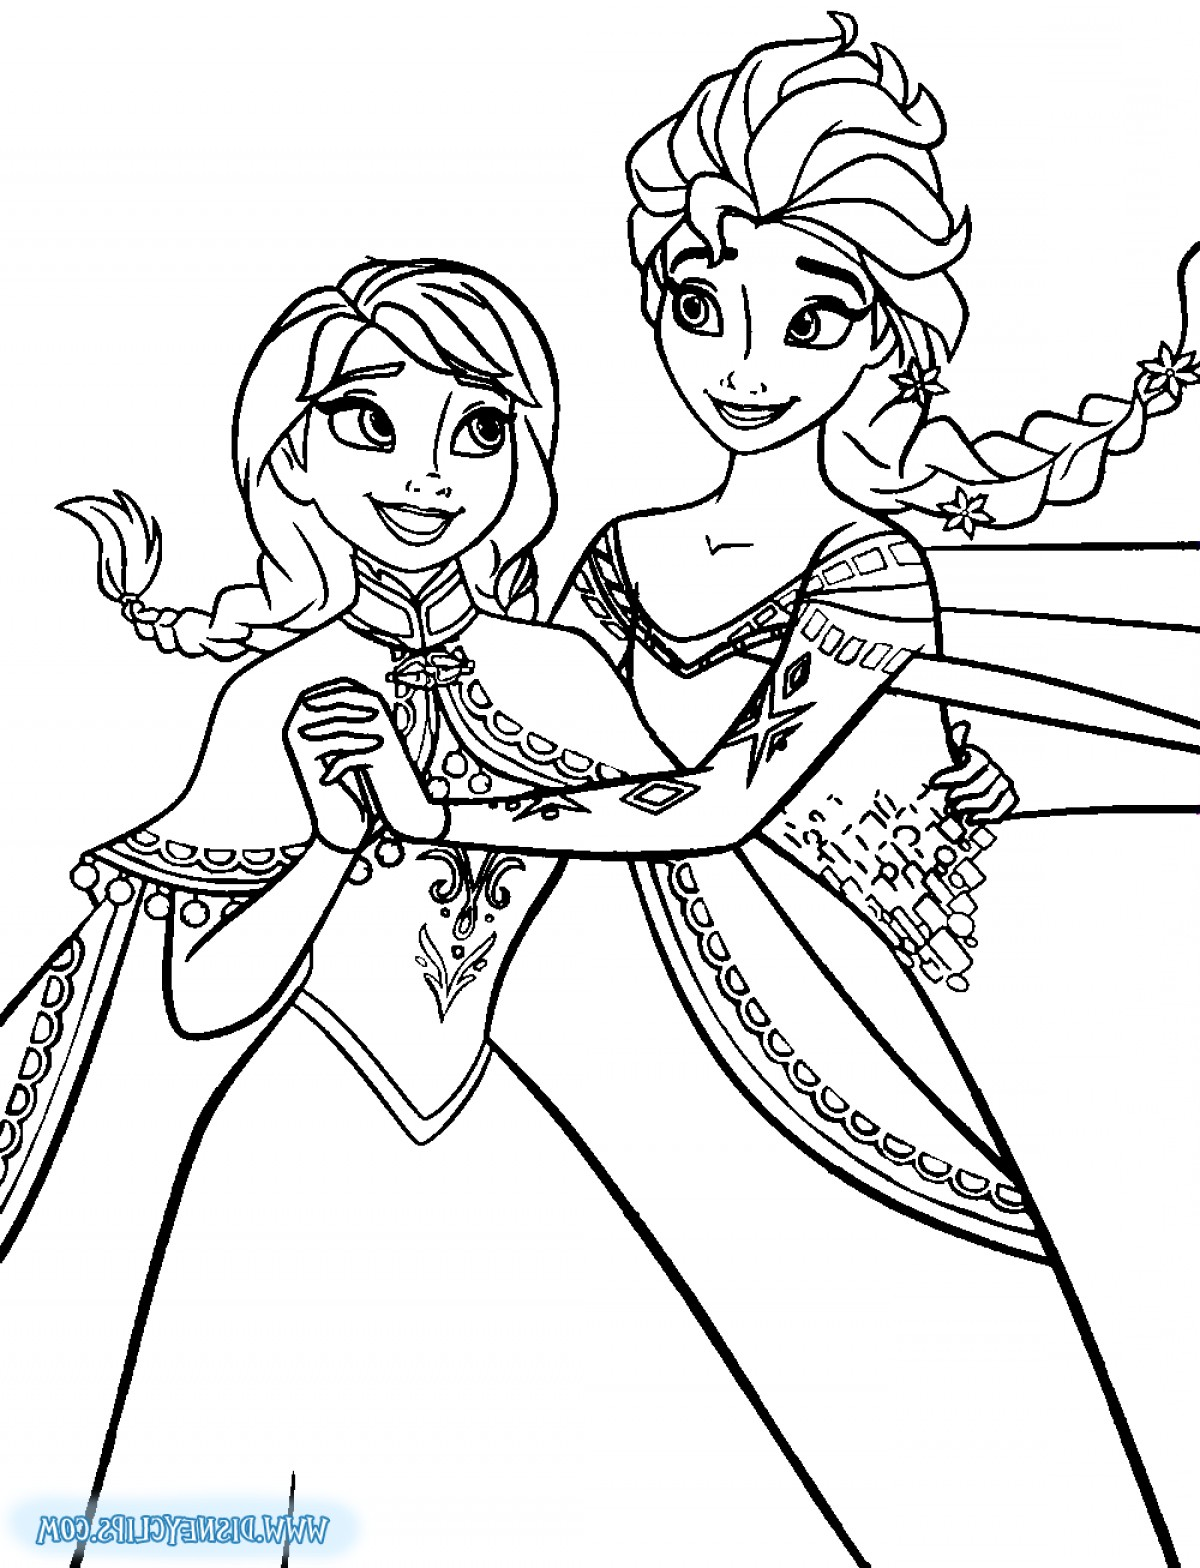 Crowning page elsa soidergi. Frozen clipart coloring